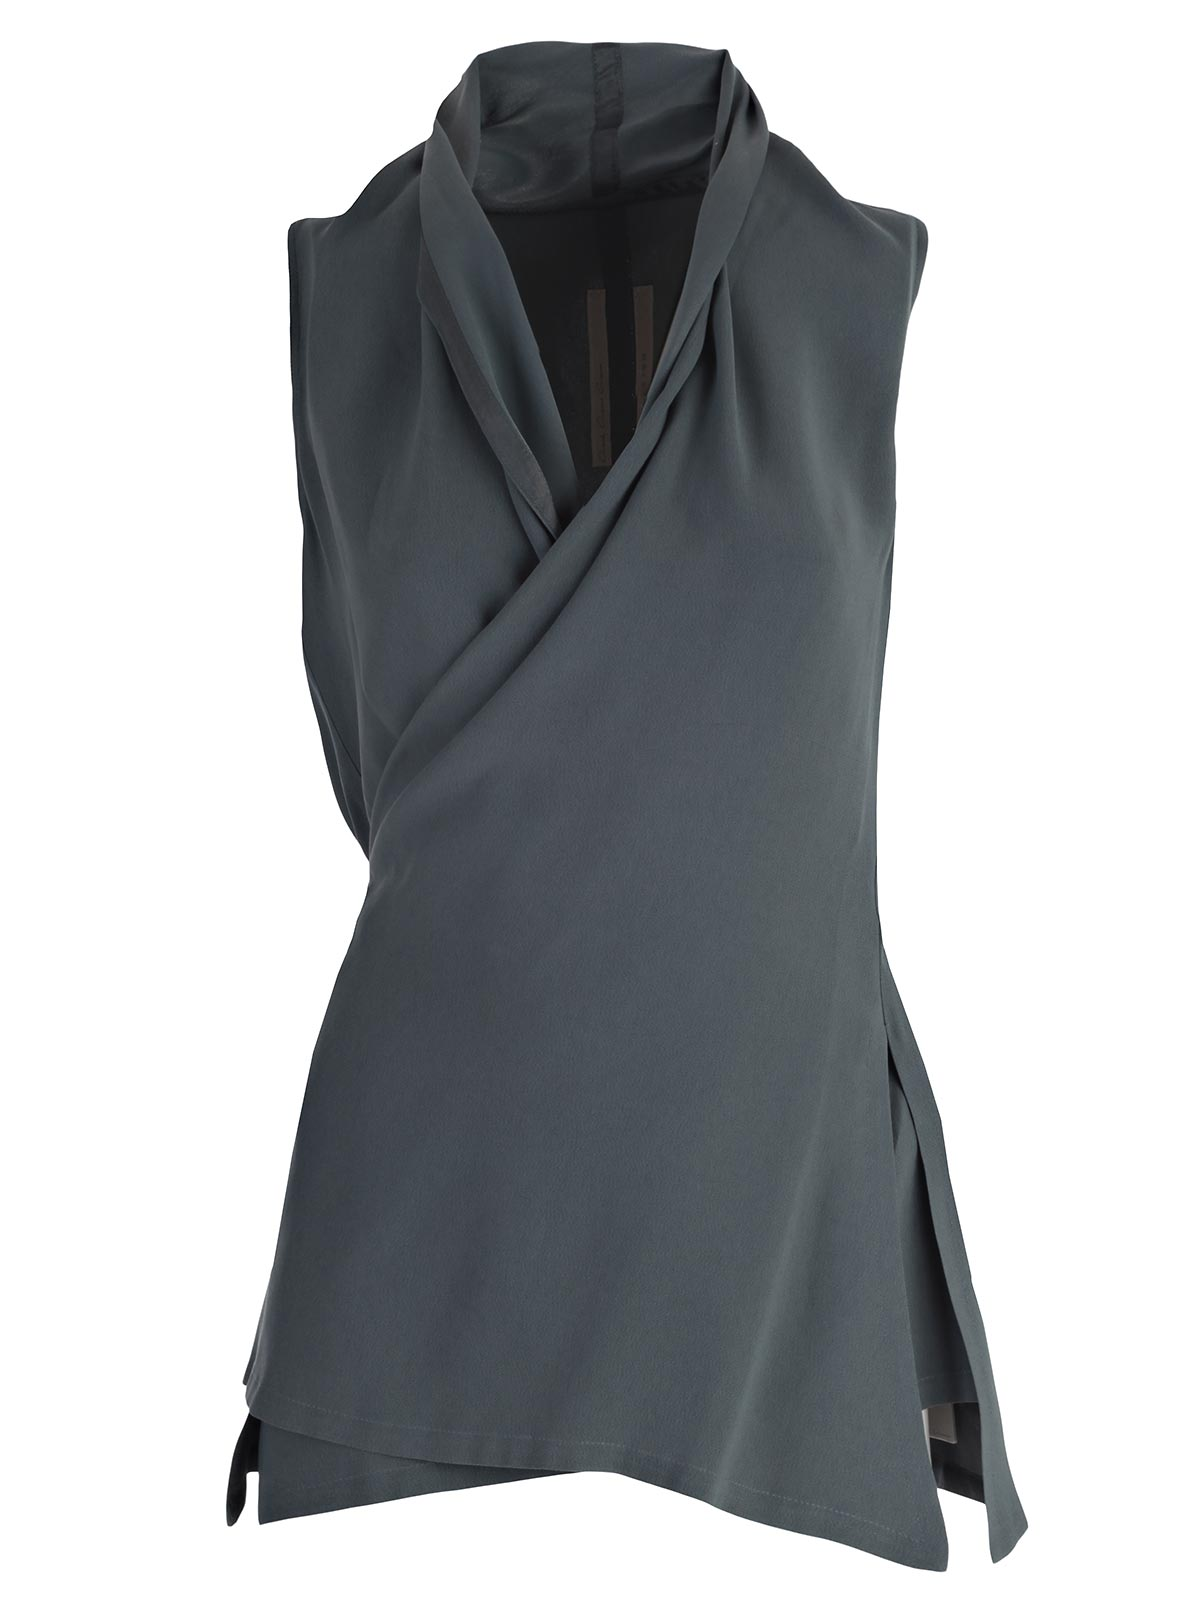 Picture of RICK OWENS TOP TOP S/M INCROCIO